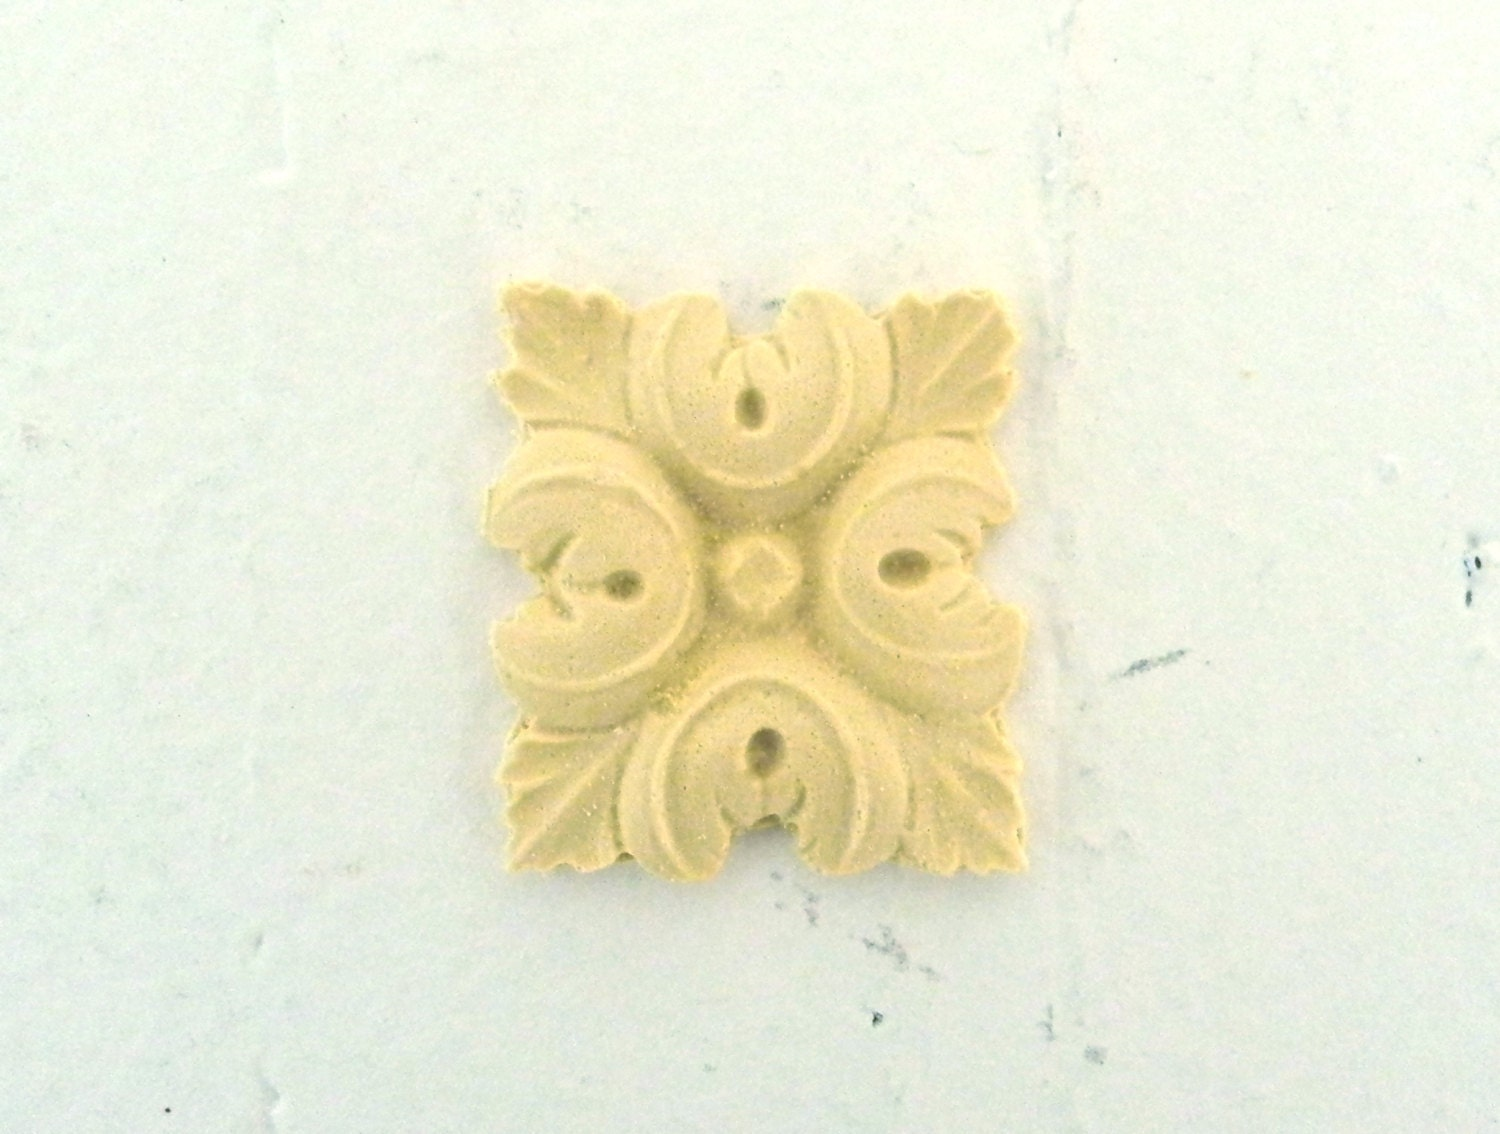 Square Rosette Furniture Applique Wood Amp Resin Trims And